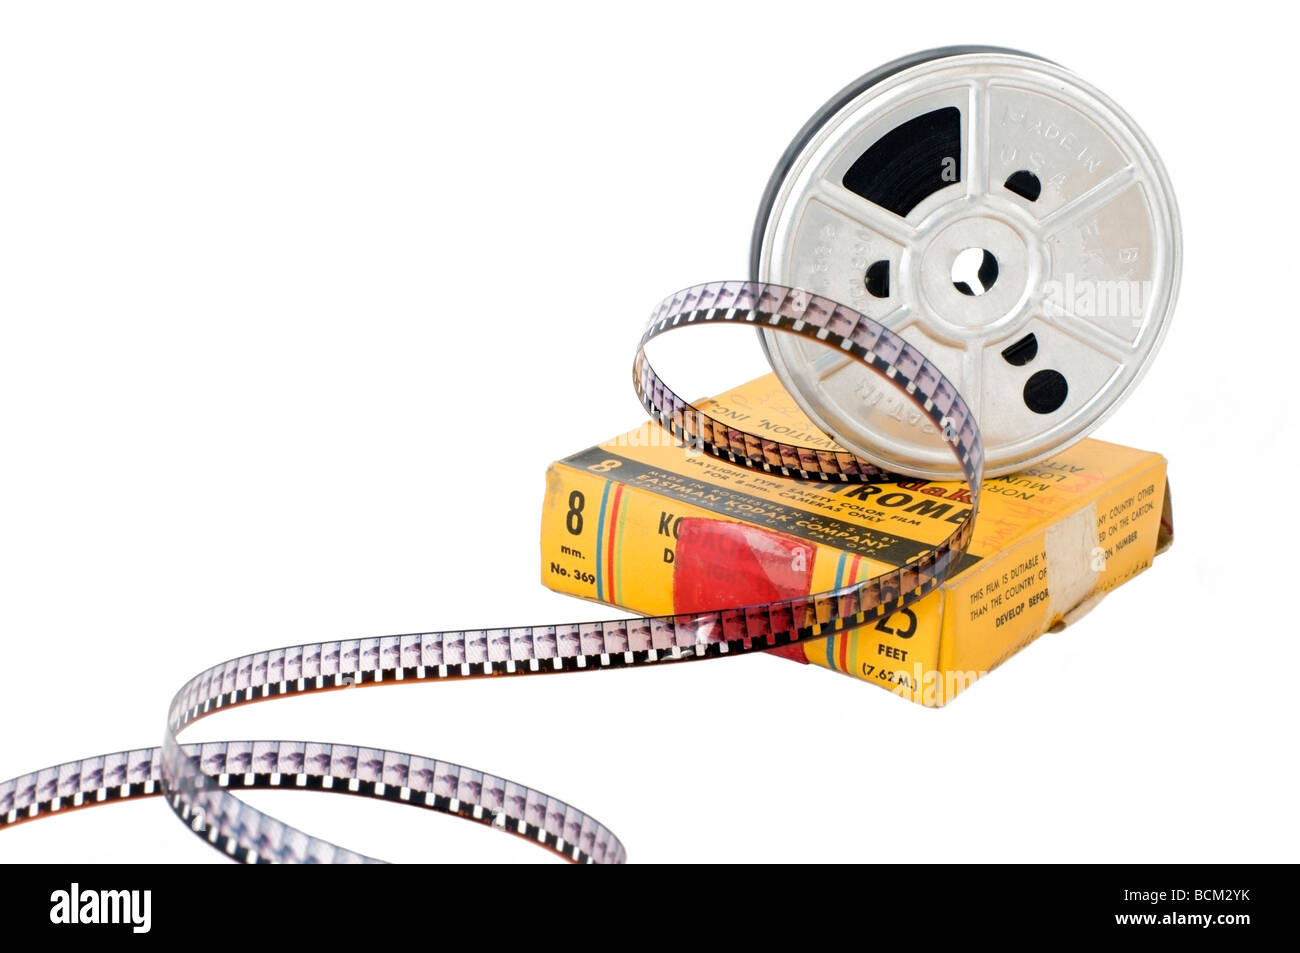 An old 8mm Kodachrome colour movie film reel with film unrolled perched on top of the original yellow film box. - Stock Image